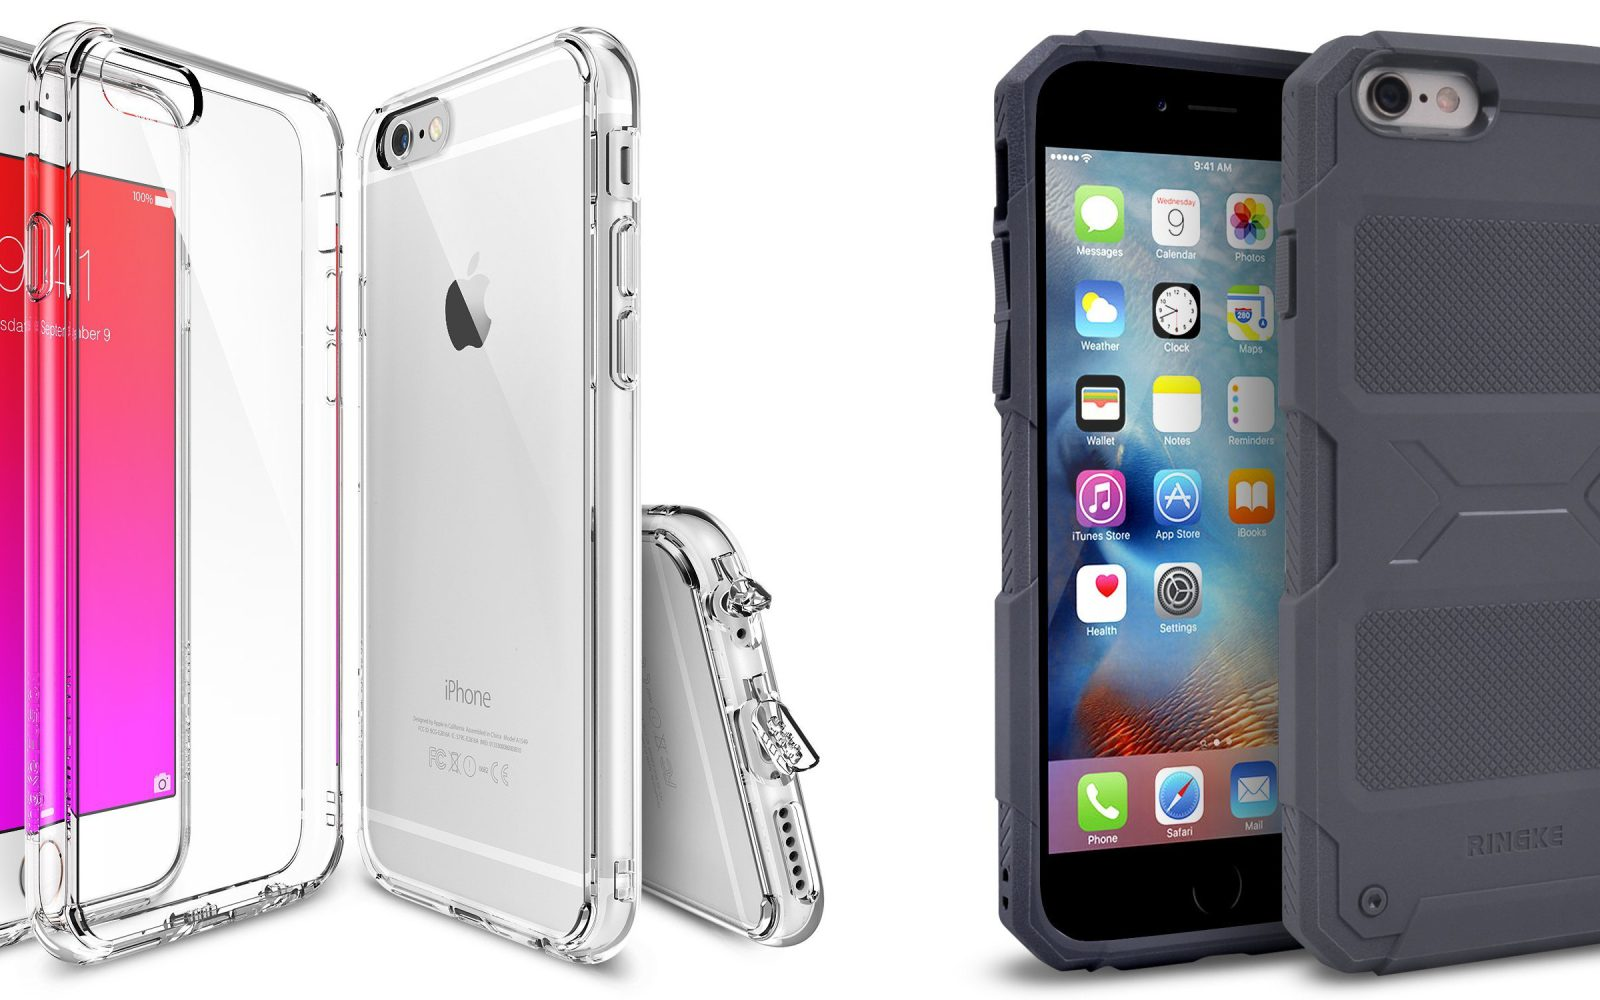 Iphone 6s Plus 9to5toys Case 7 Totu Design Crystal Color Dark Blue Ringke Luvvitt Cases In Multiple Styles Colors From 3 Shipped Reg 10